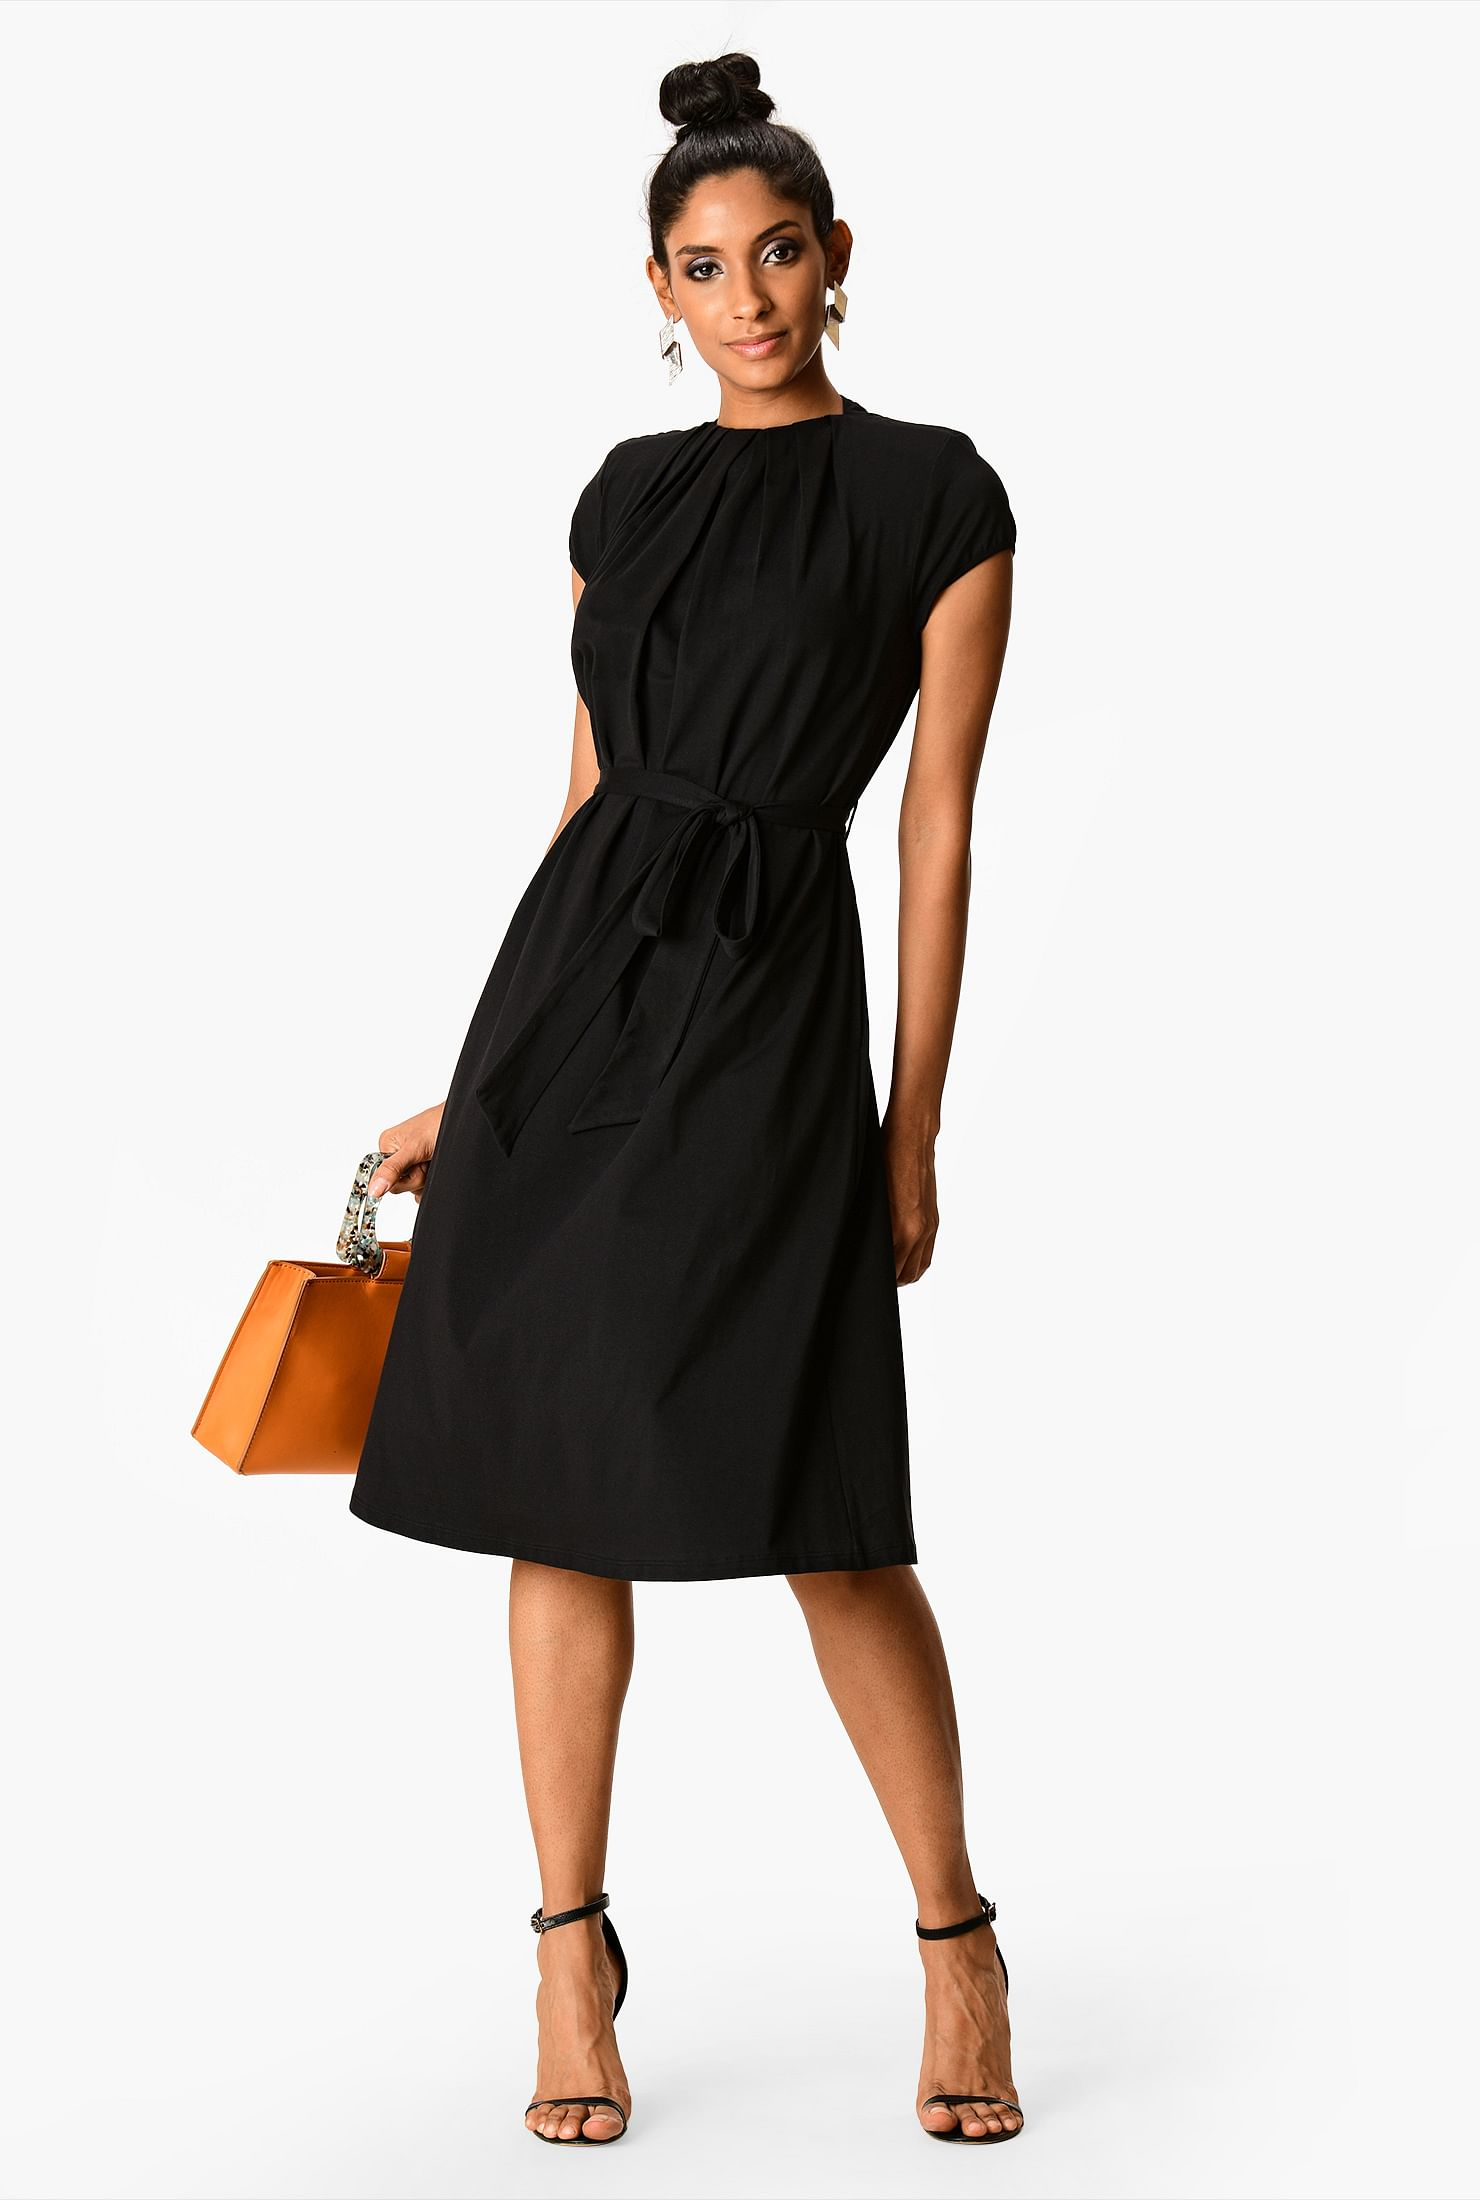 Simple black A line dress